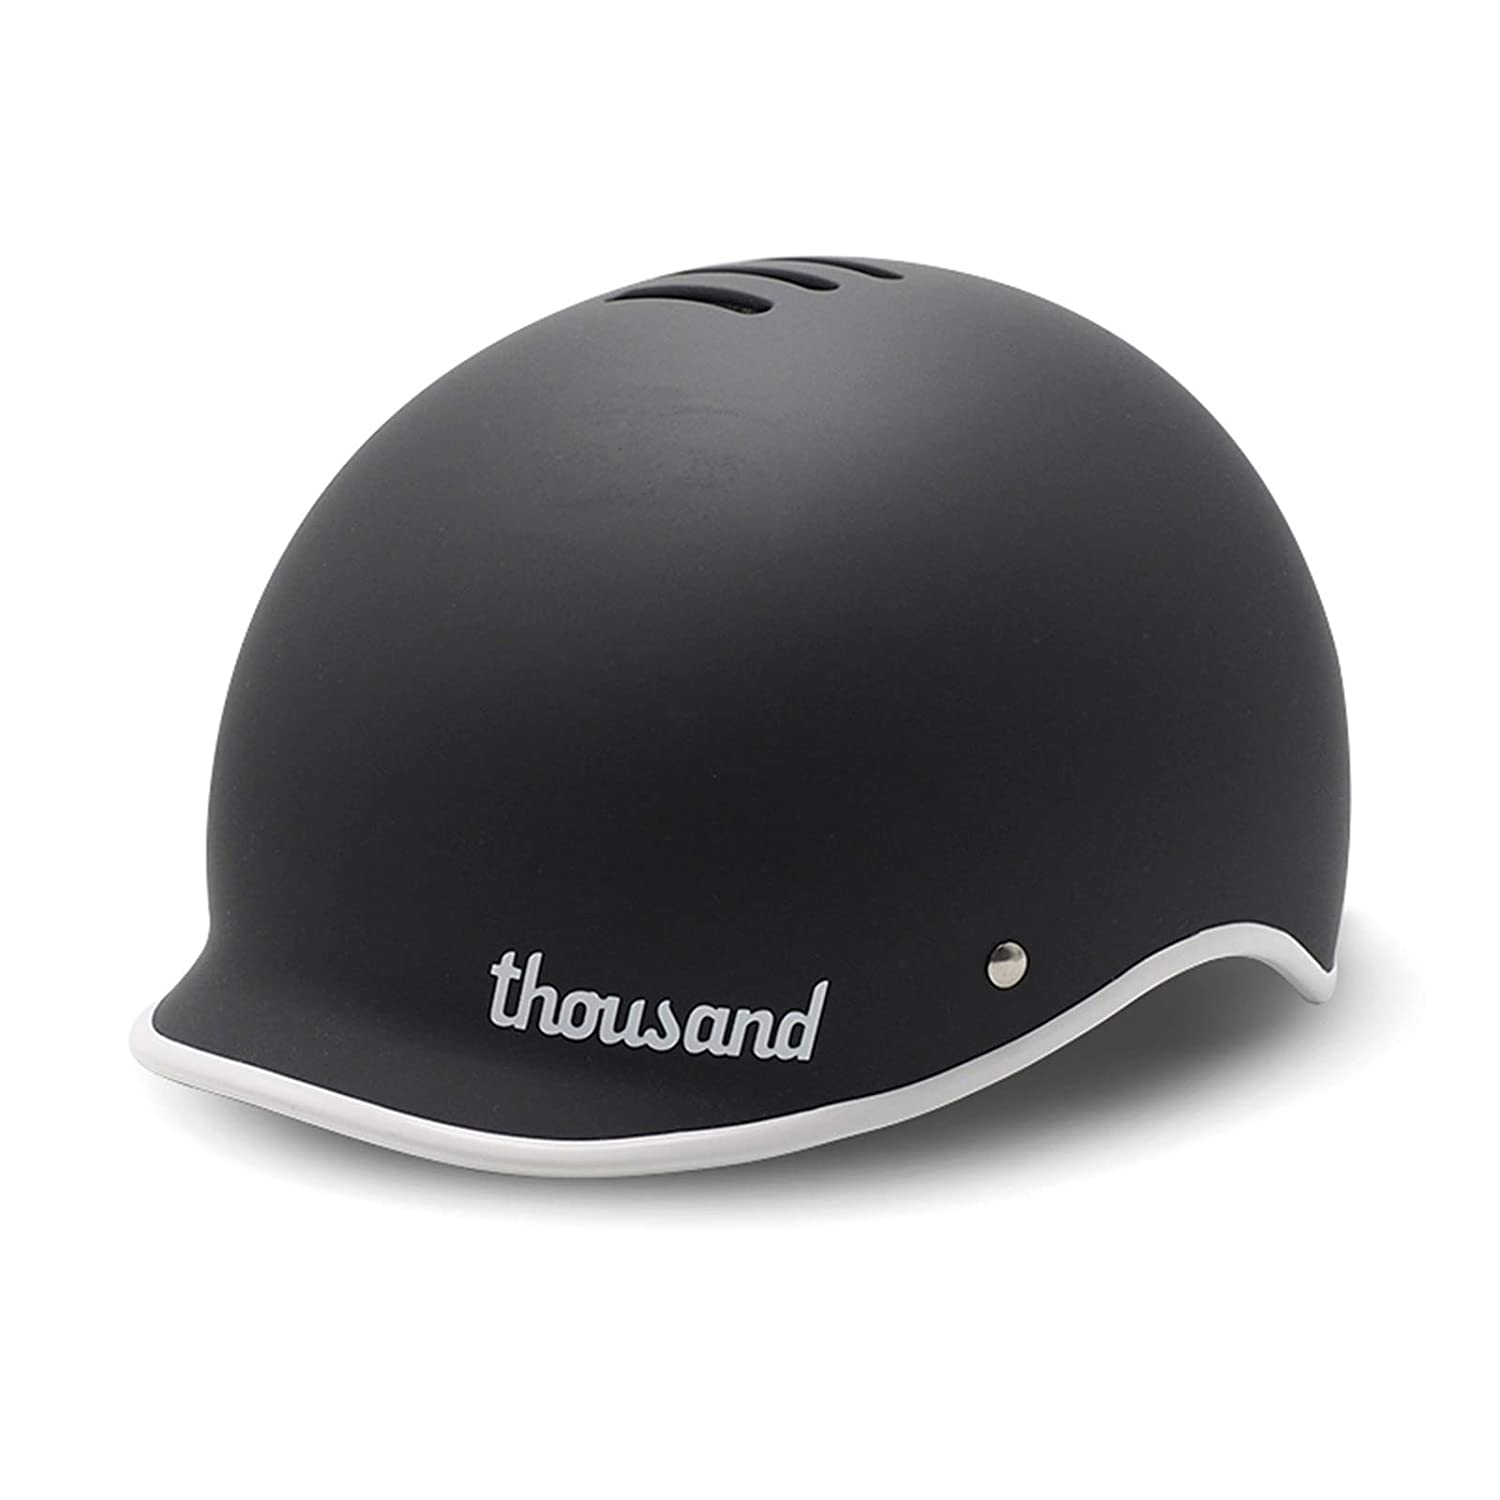 Thousand - Heritage Collection/Carbon Black With Adjuster S Size   B07RZ6S875